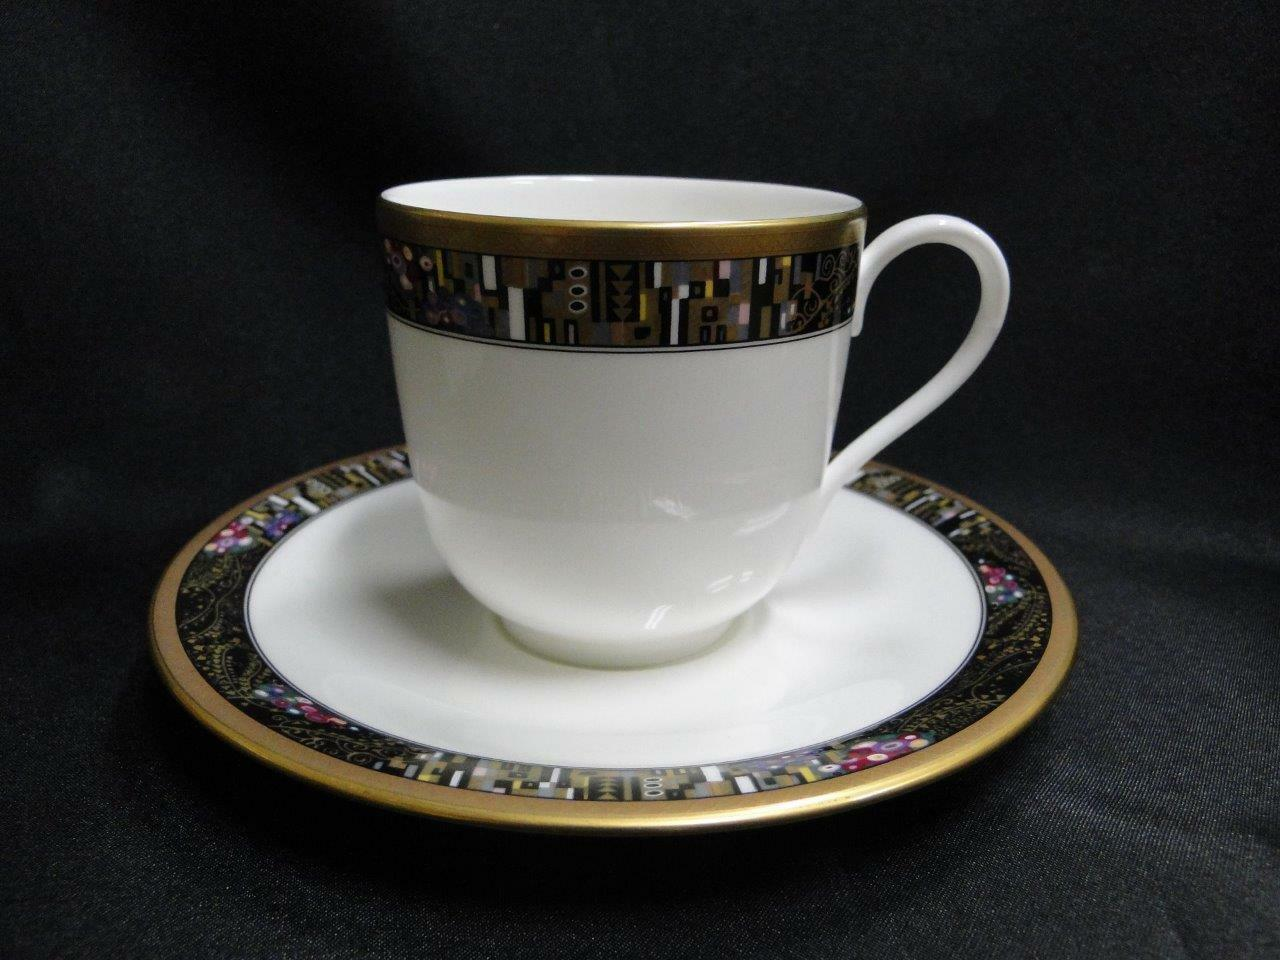 Mikasa Royal Glimmer CAG11,White w/ Black Multi,Gold Trim:Cup and Saucer Set (s)